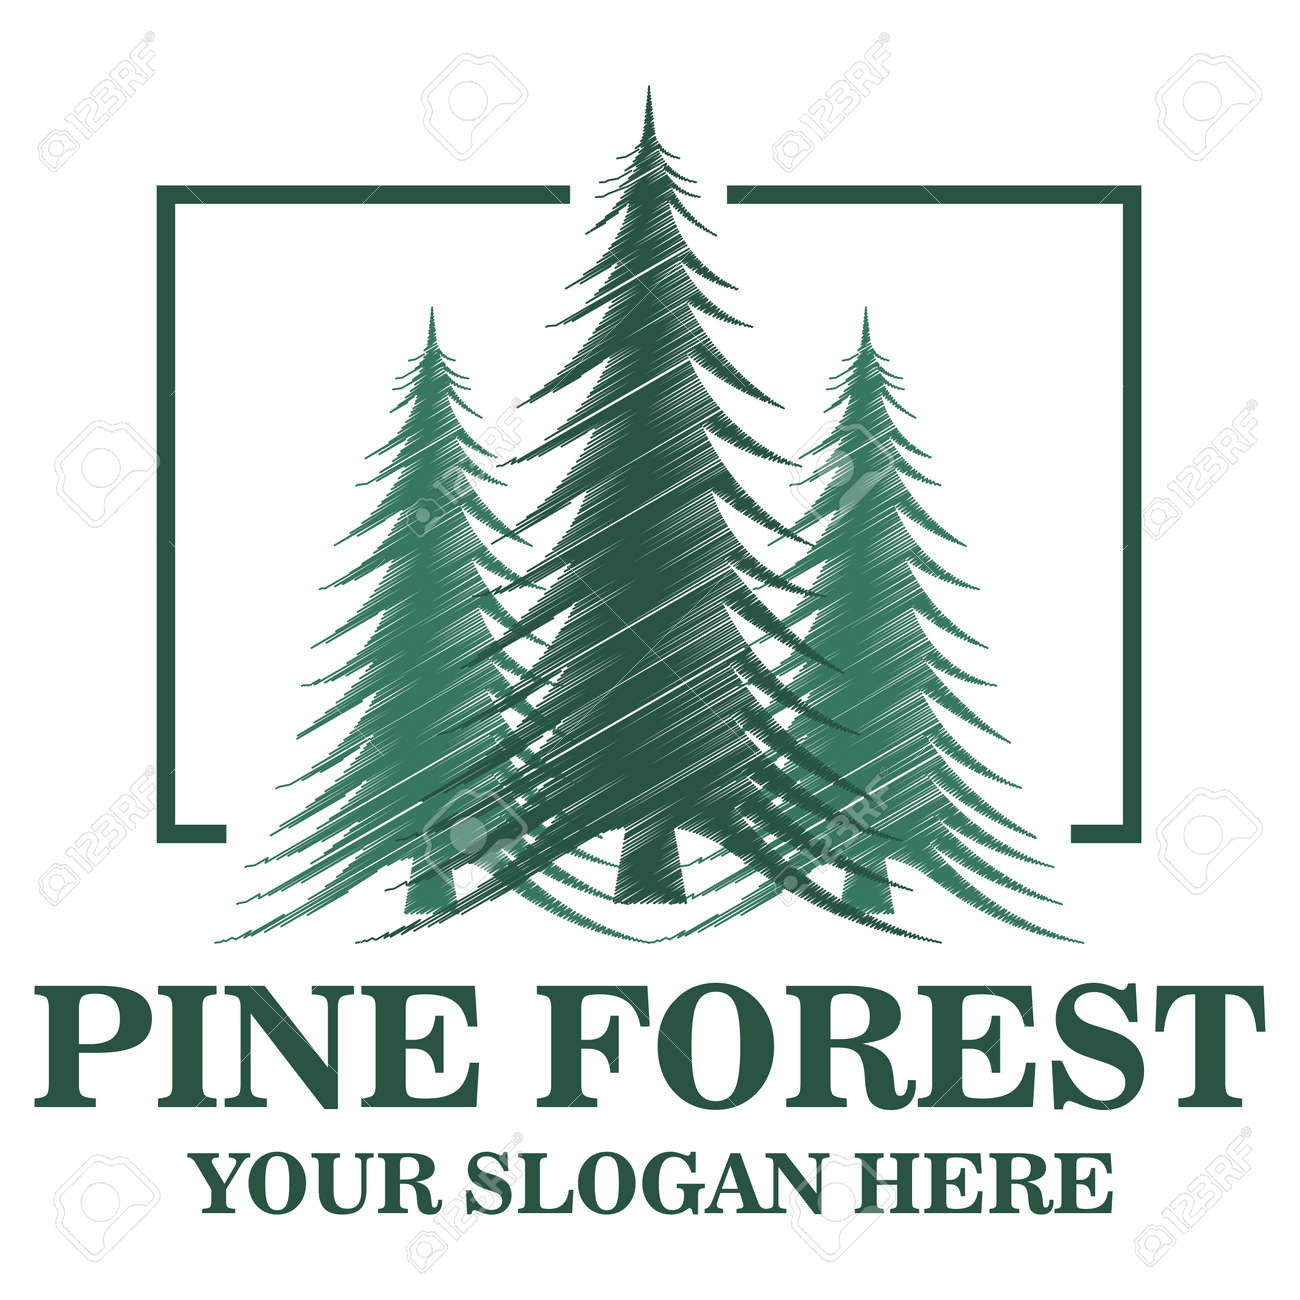 pine forest logo template royalty free cliparts vectors and stock